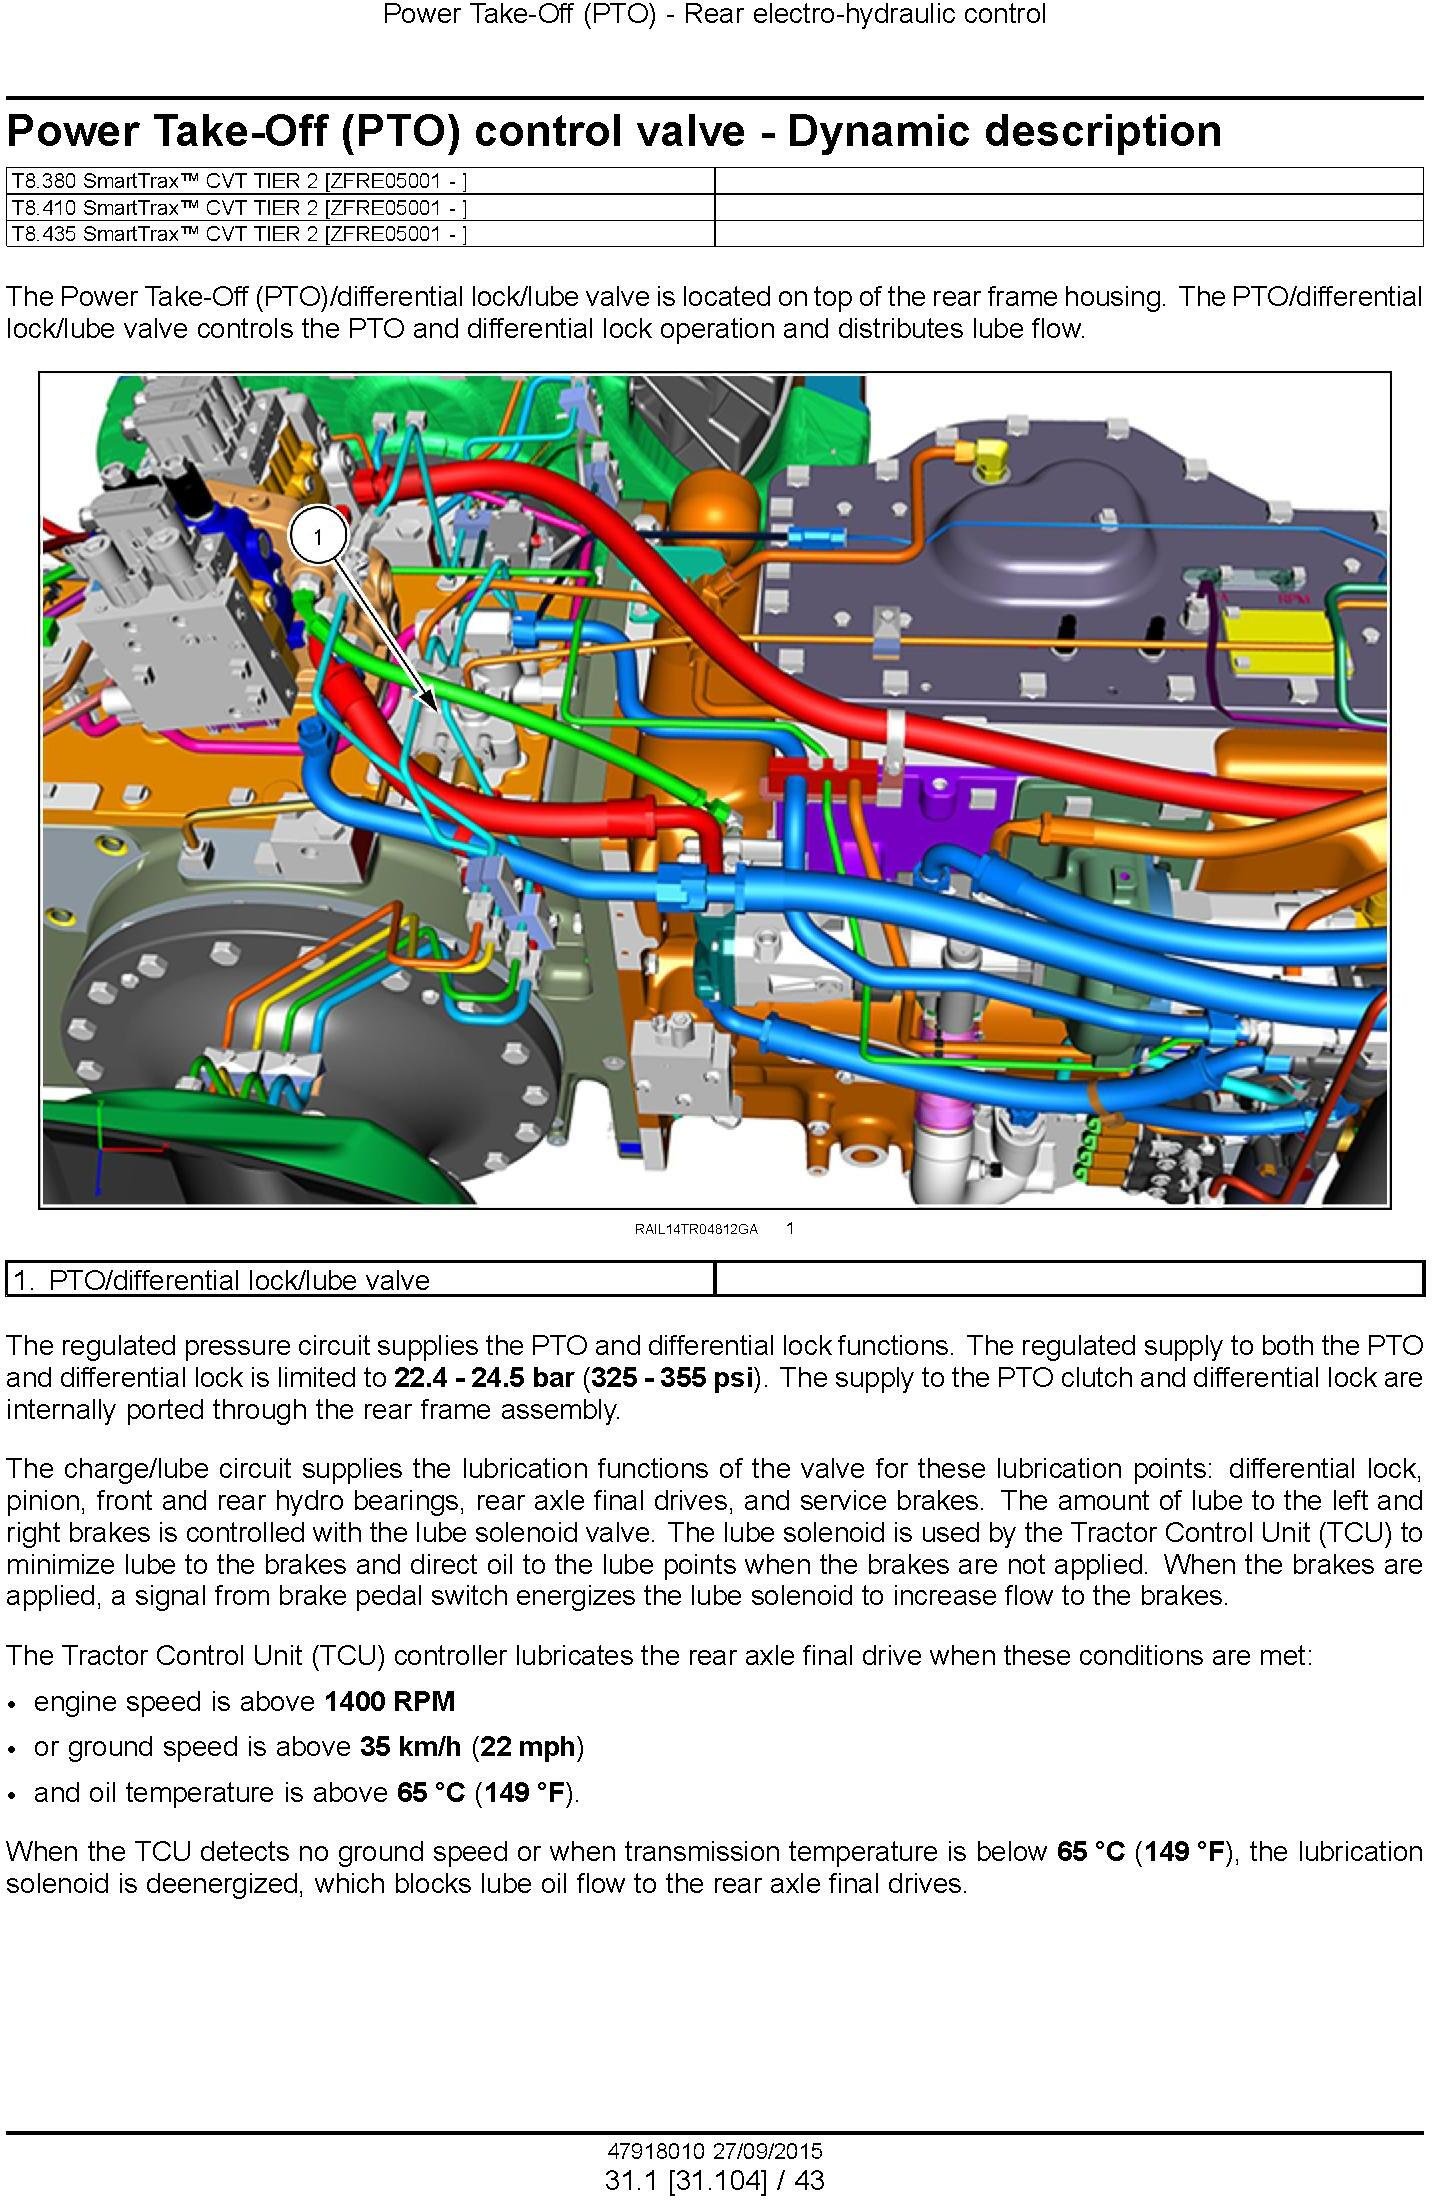 New Holland T8.320, T8.350, T8.380, T8.410, T8.435 and SmartTrax Tier 2 CVT Tractor Service Manual - 2